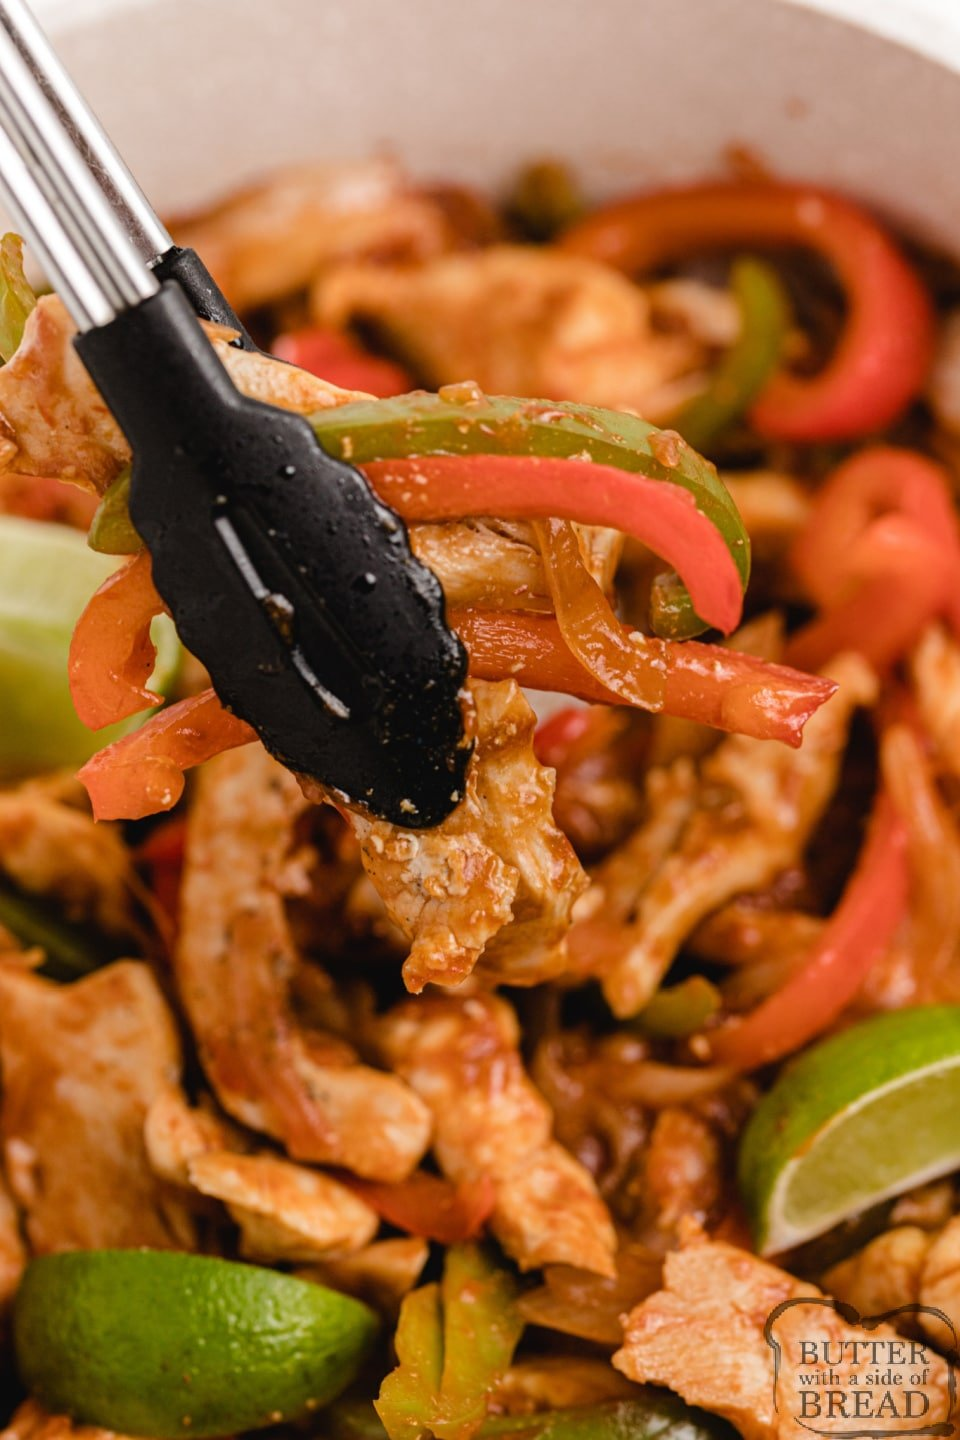 Easy Chicken Fajitas made with peppers, onions and a secret ingredient that takes the flavor over the top. Quick chicken dinner recipe that can be prepped and ready in less than 30 minutes!